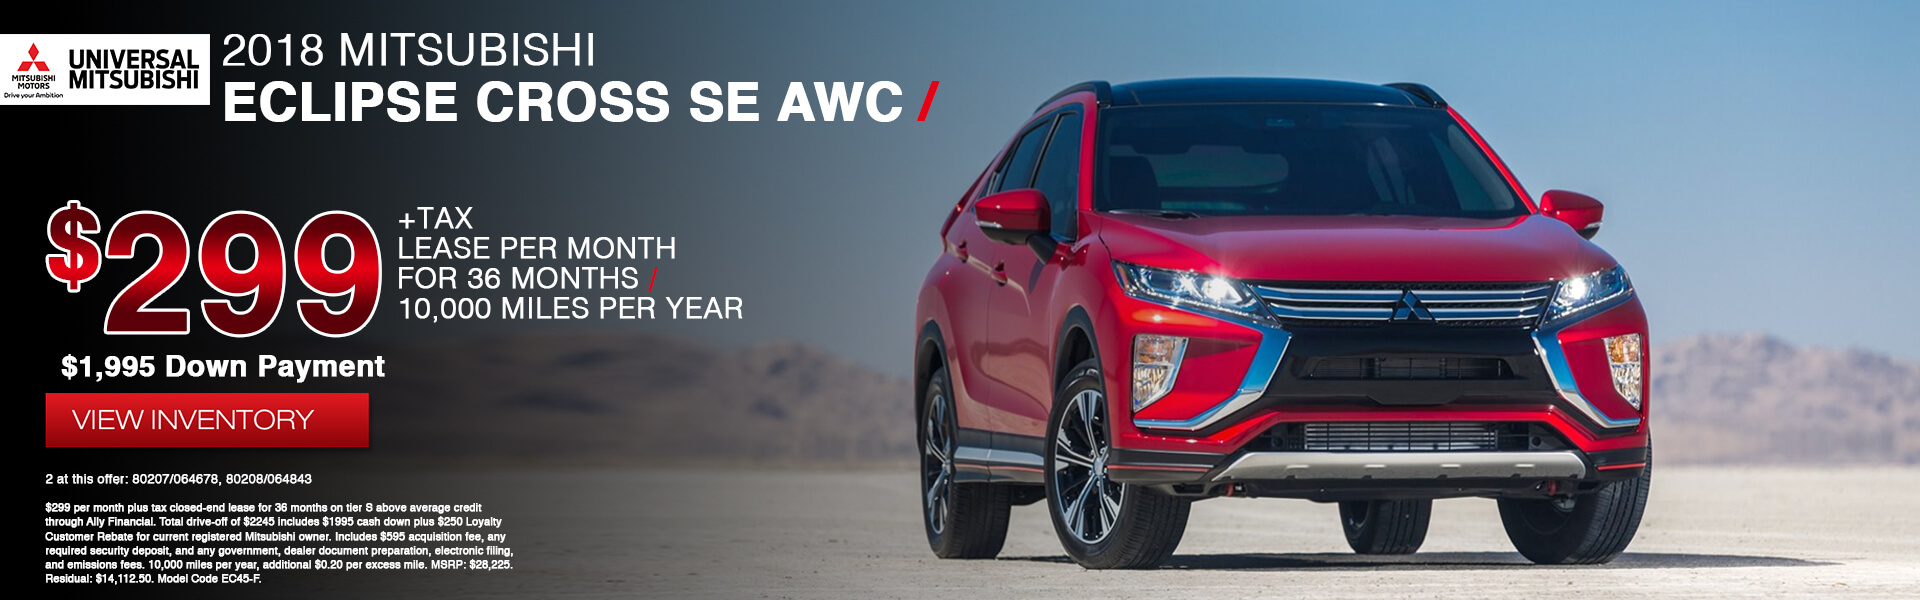 Mitsubishi Eclipse Cross SE $299 Lease